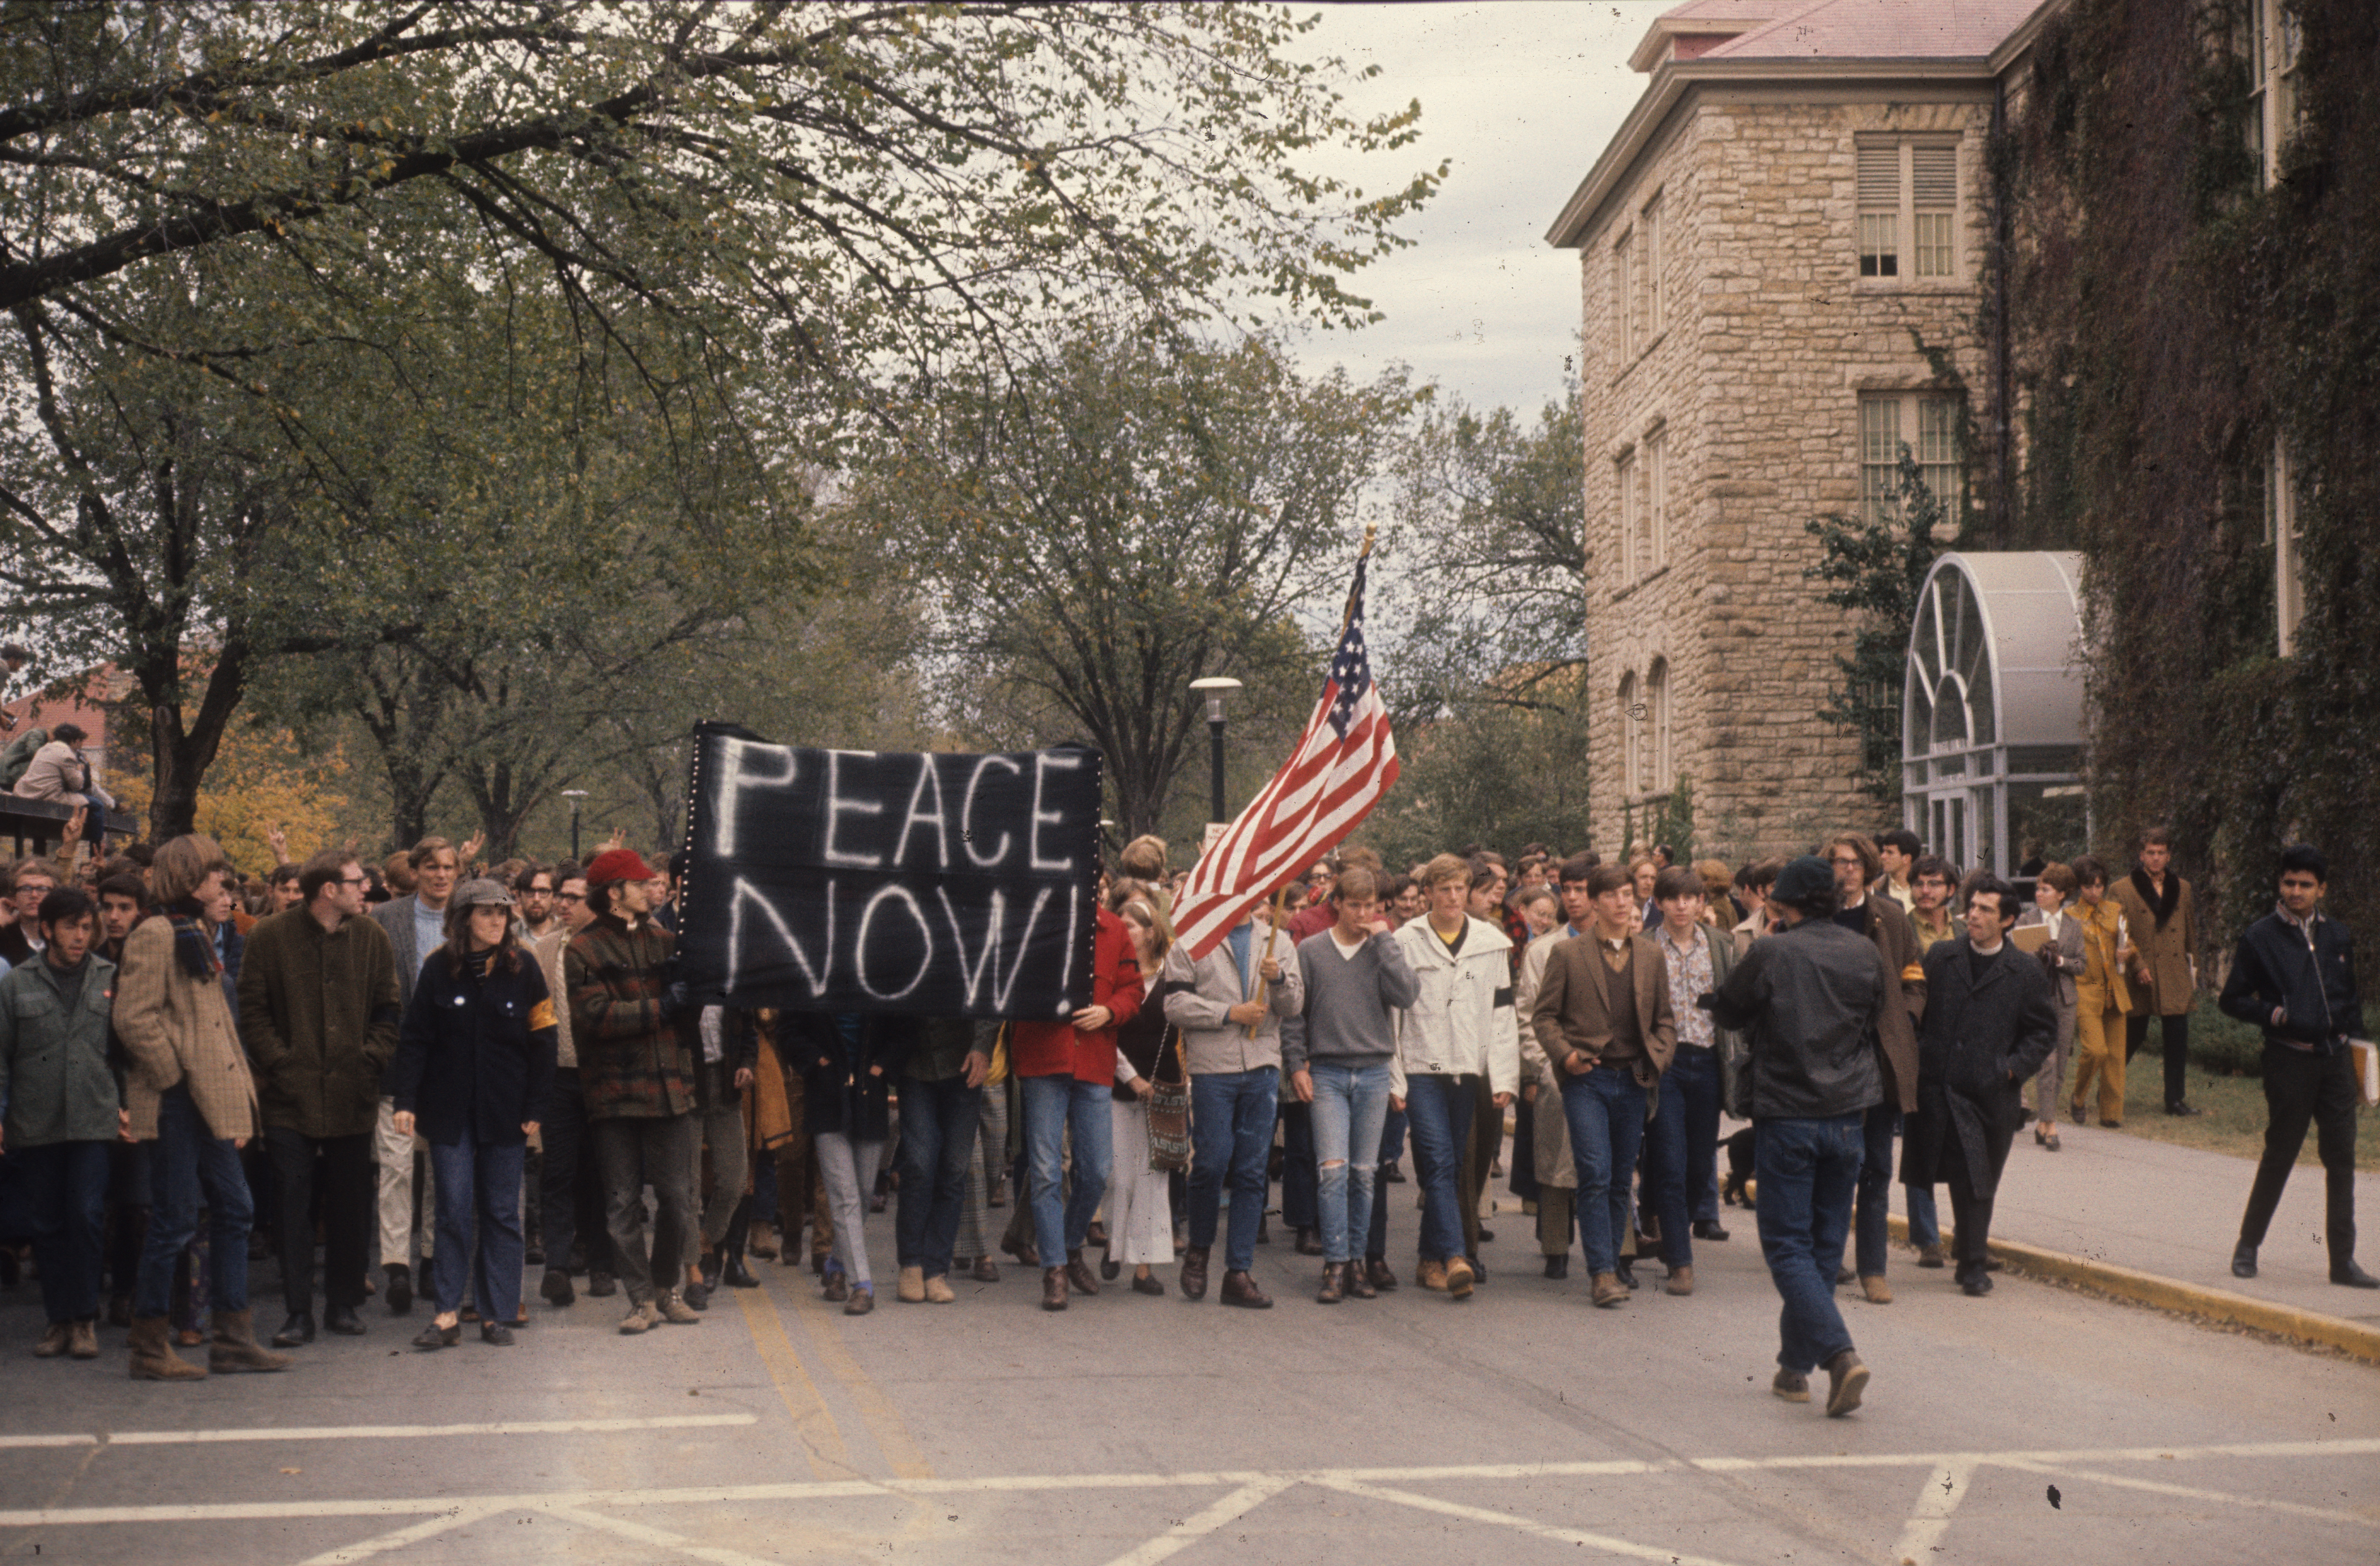 Protest News: Thousands Marched 40 Years Ago At KU To Protest Vietnam